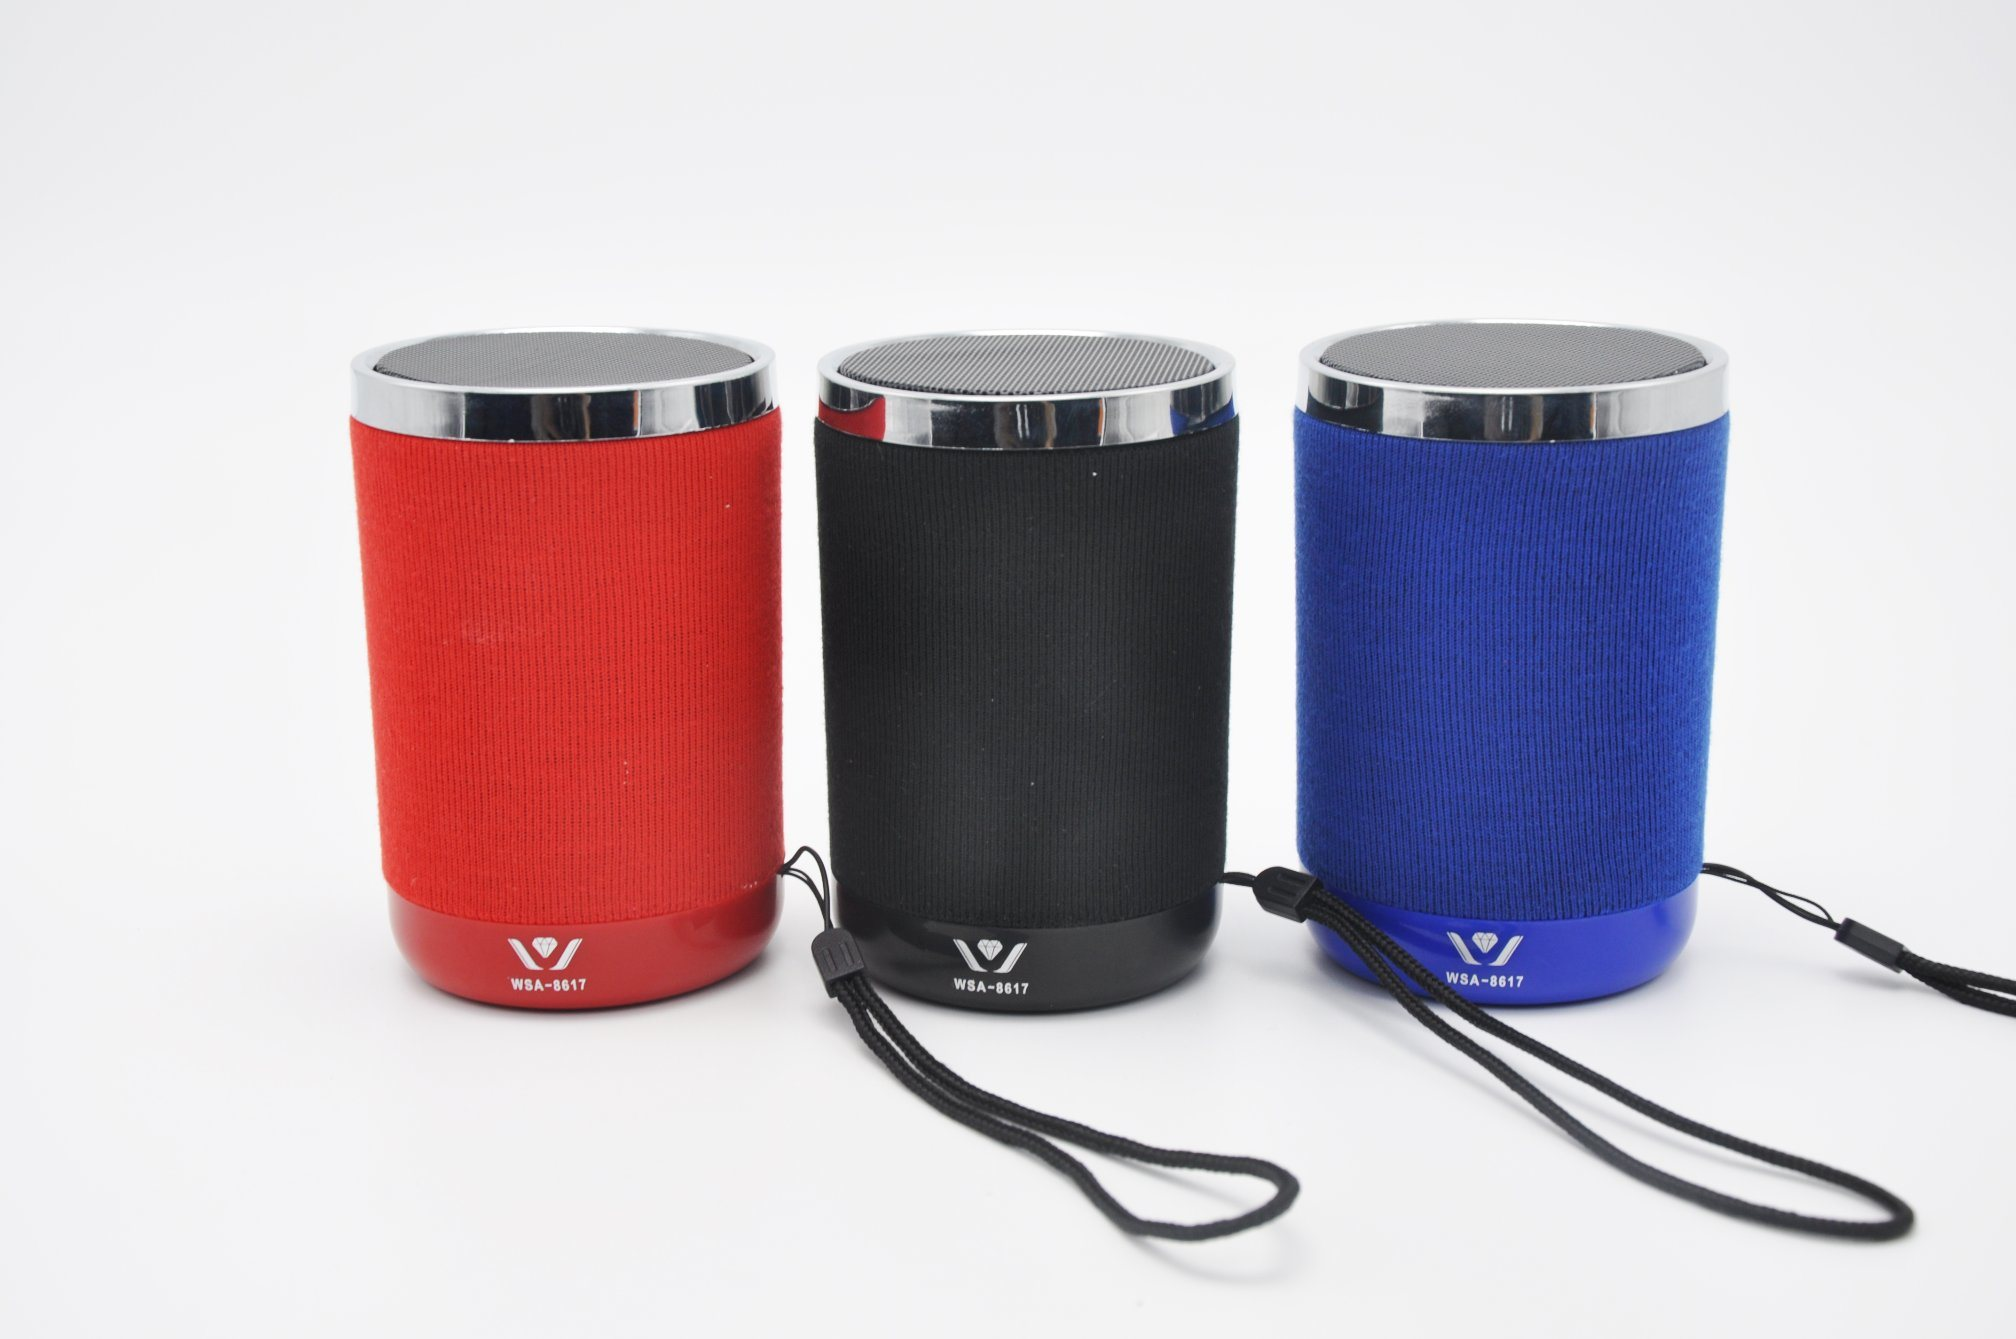 Fabric Mini Portable Wireless Bluetooth Speaker Wsa-8617 (Daniu brand) Withfm Radio, TF Card, USB, Aux in